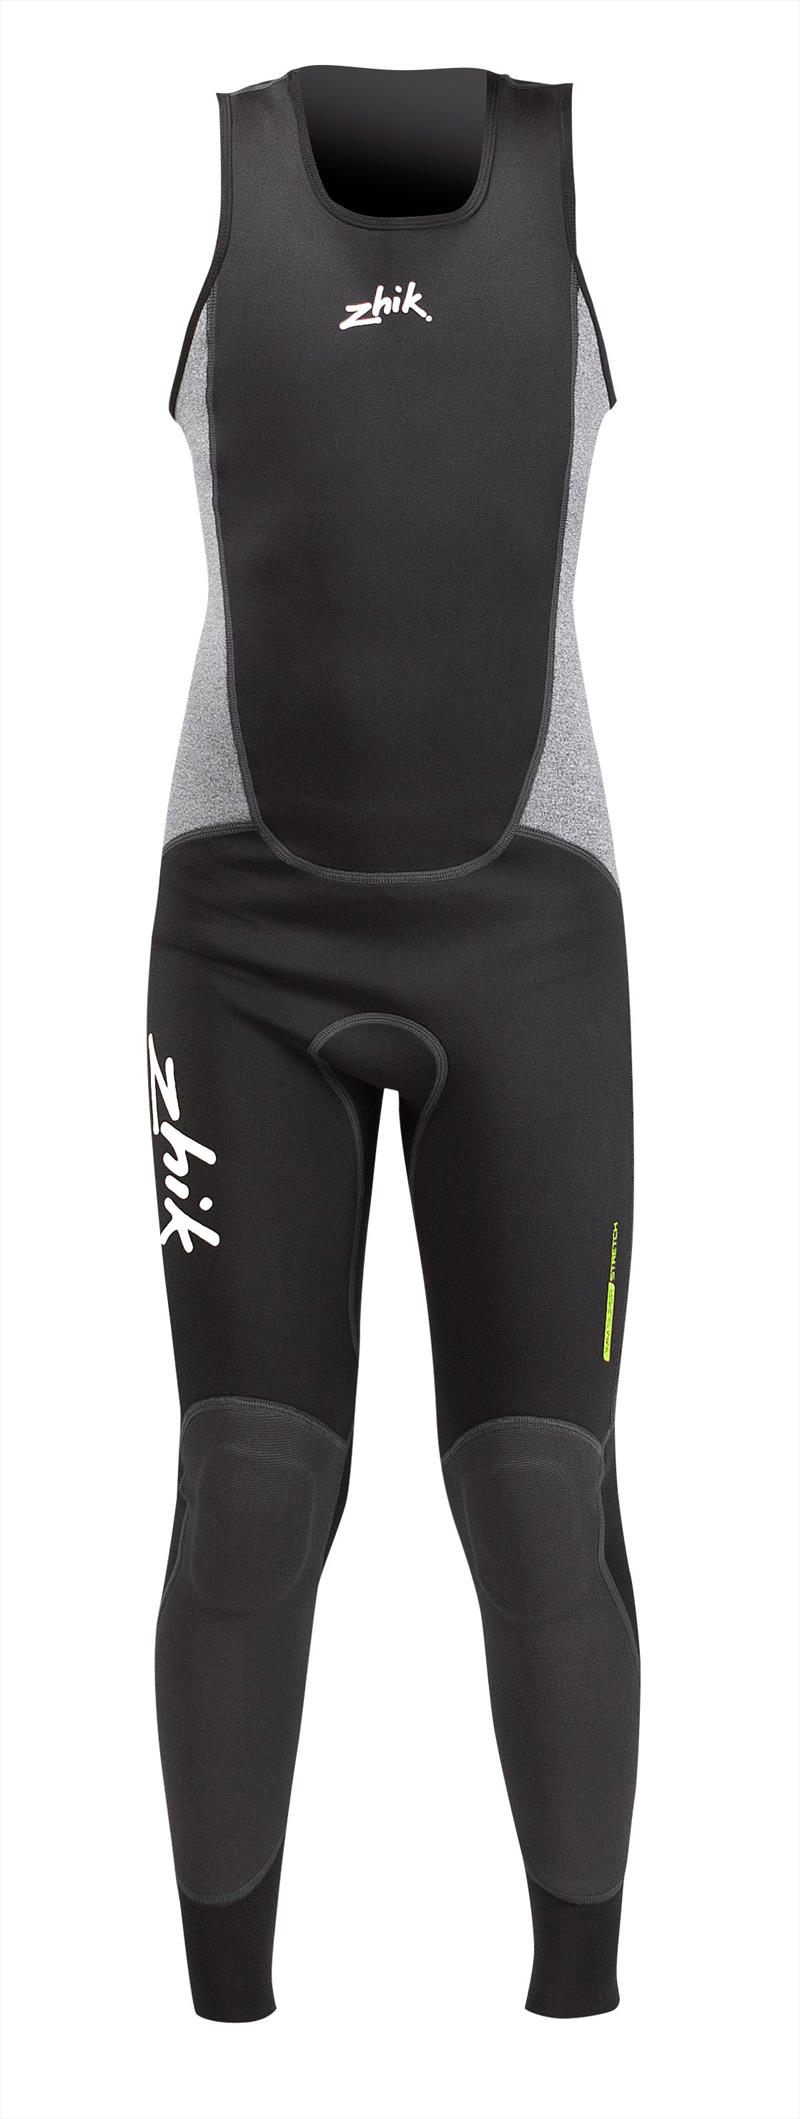 Zhik Junior Neoprene Skiff Suit - photo © Zhik